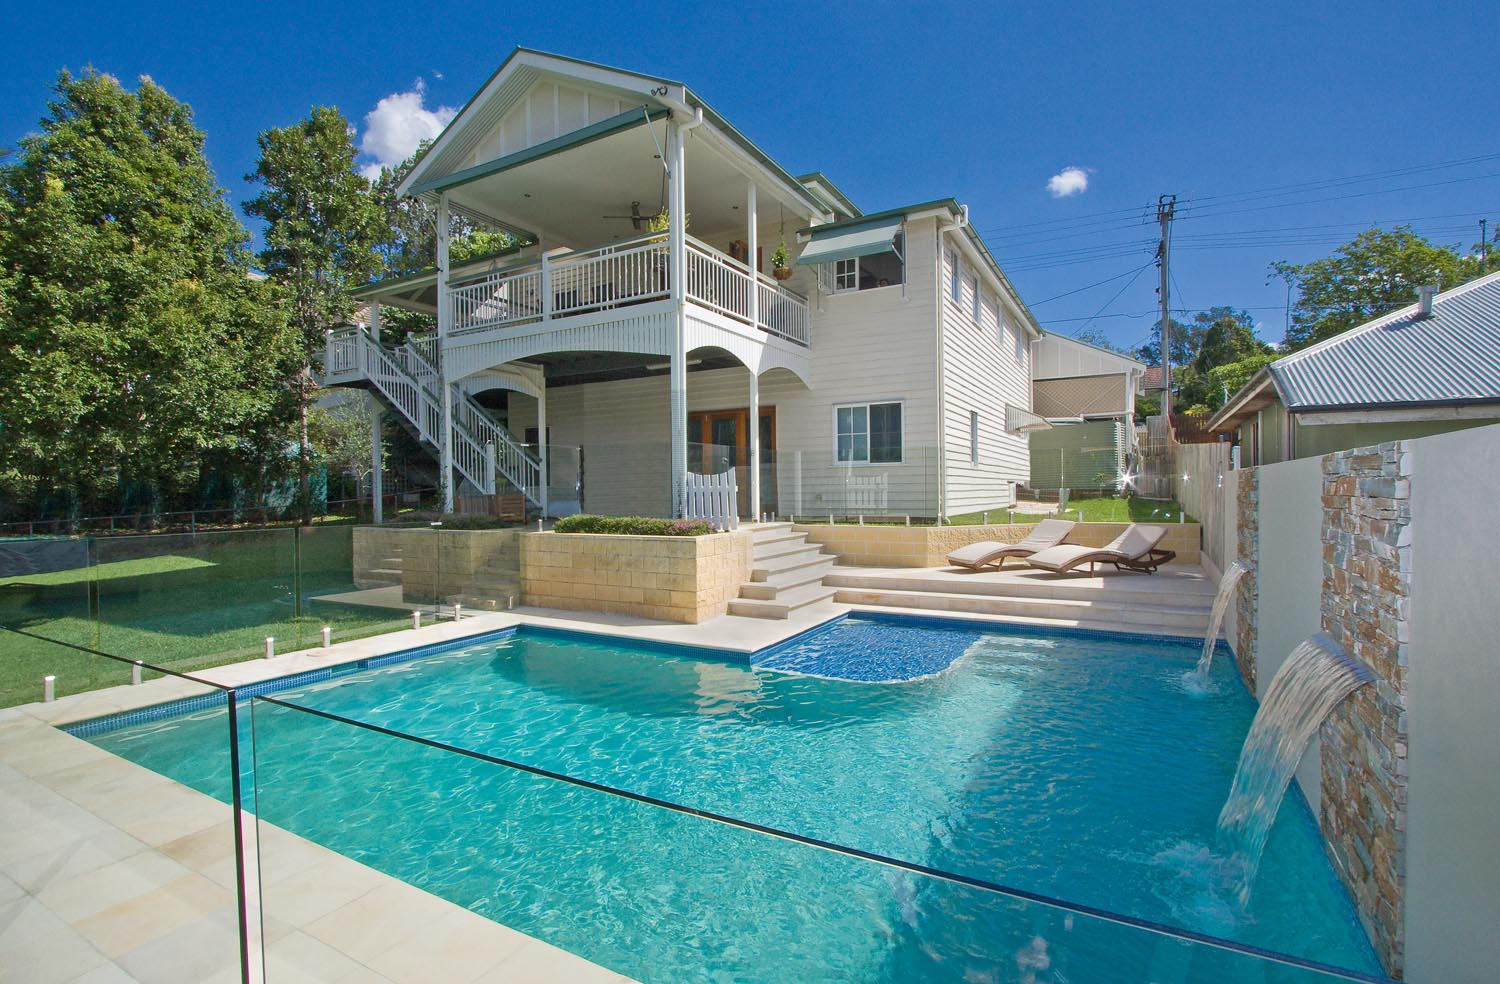 A Touch Of Sand Sandstone Brisbane Backyard Completehome